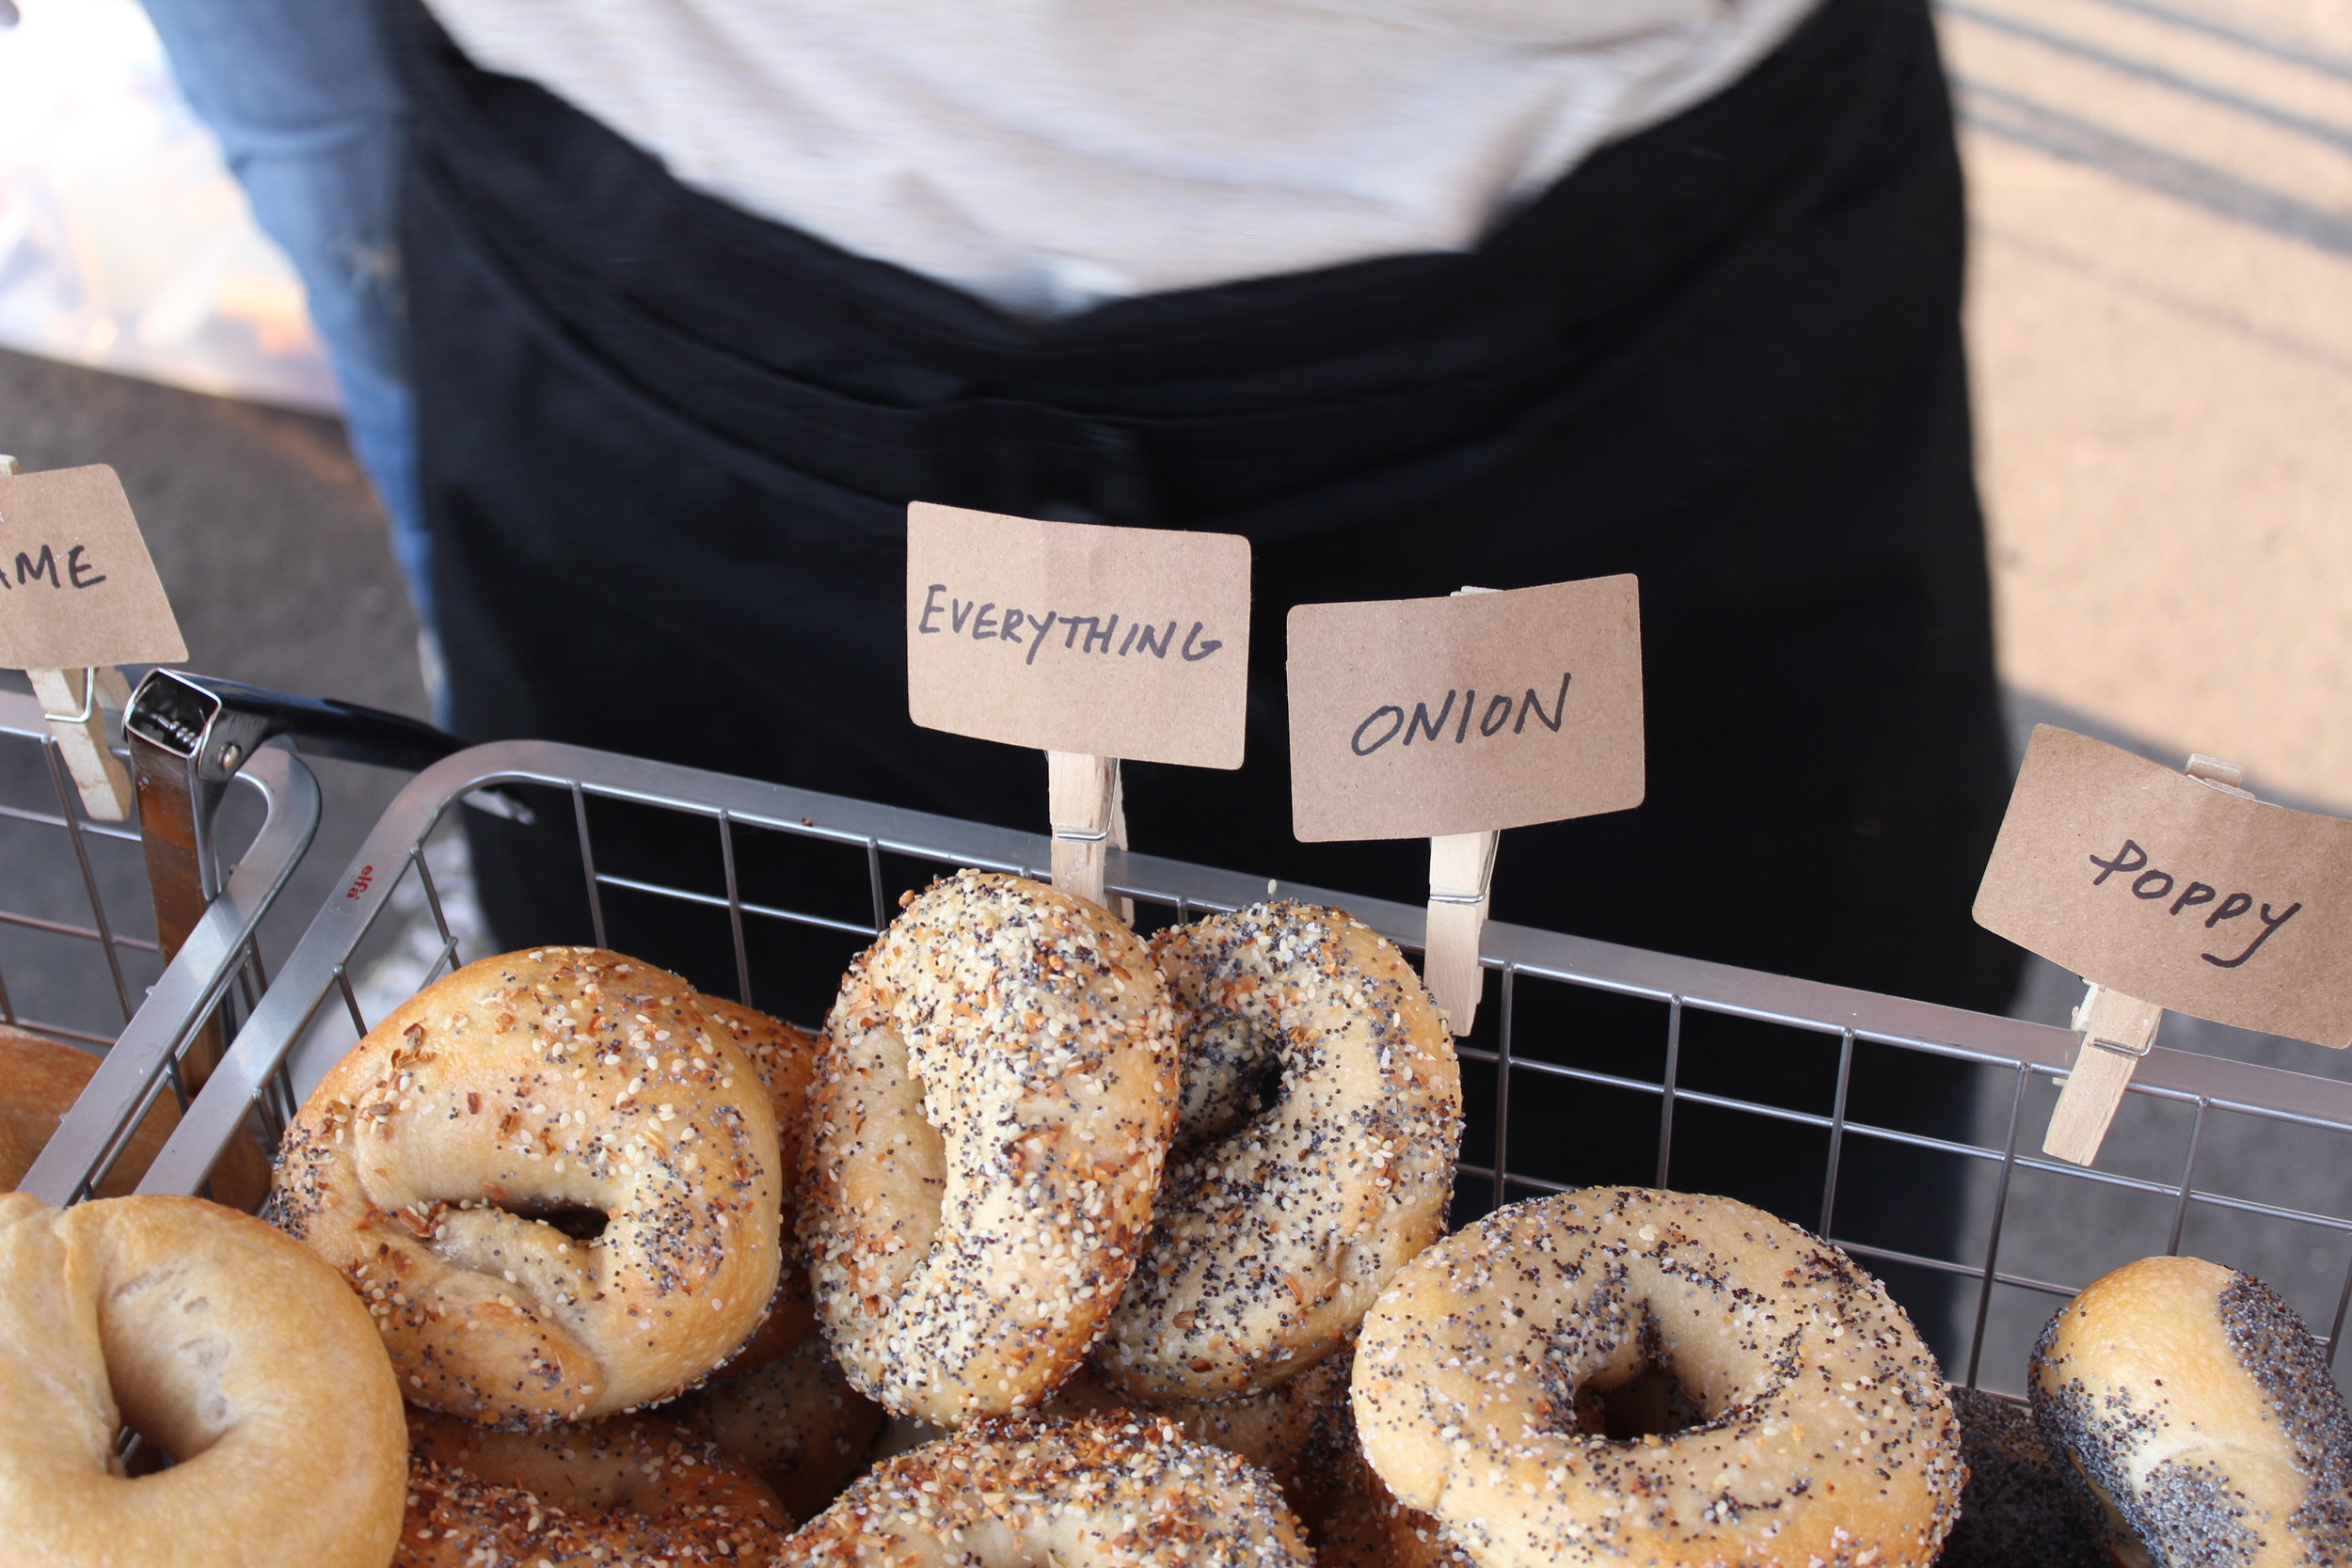 Image provided by Kate Lloyd of Rise Bagel Co.